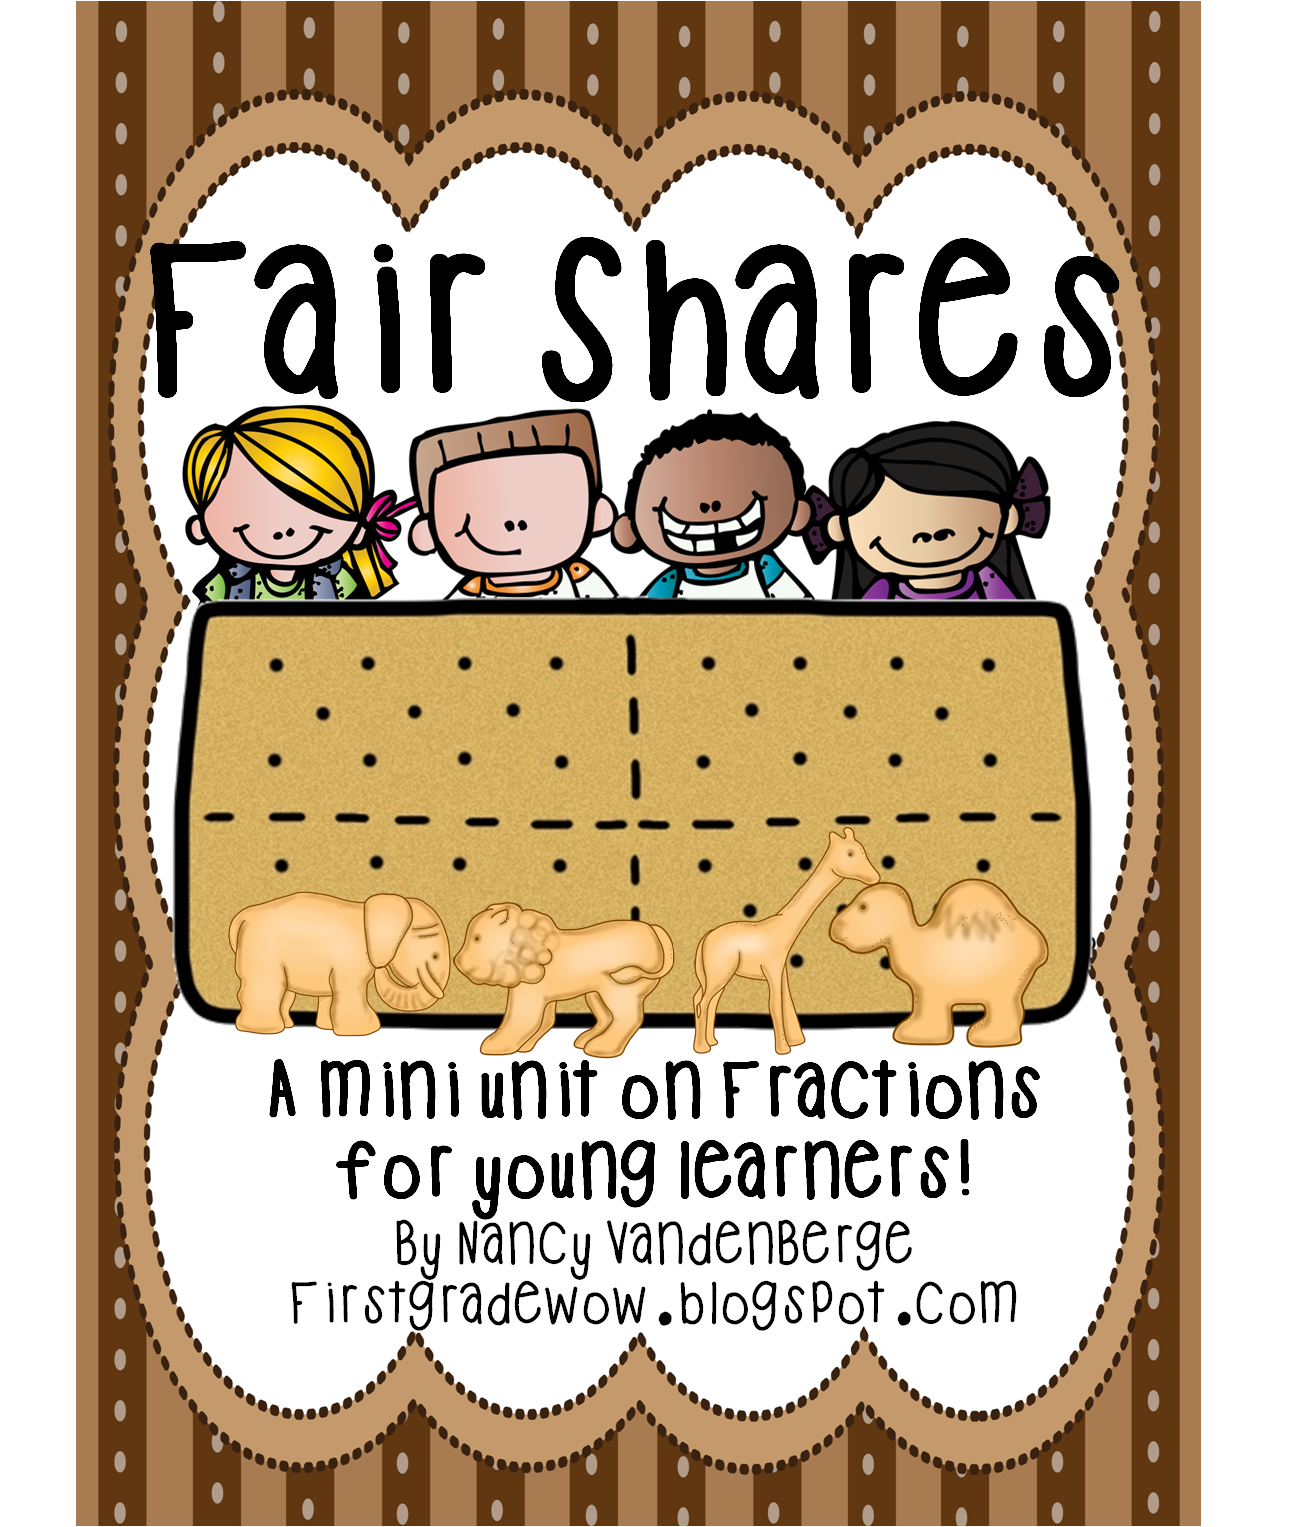 First Grade Wow Shapes And Fair Shares